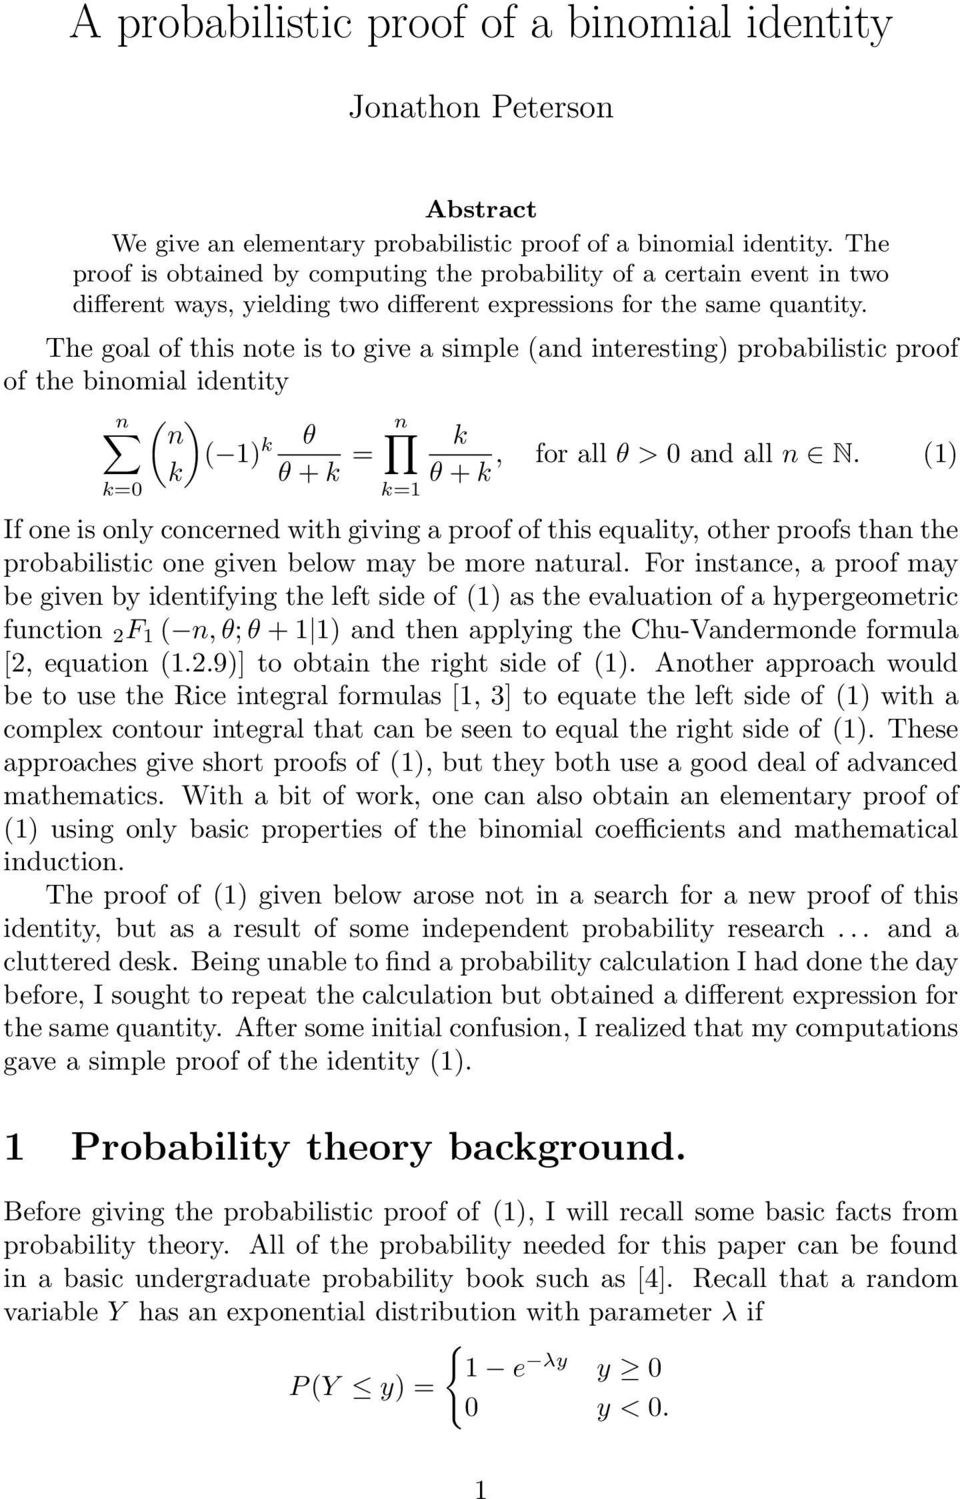 The goal of this ote is to give a simple (ad iterestig) probabilistic proof of the biomial idetity ( ) ( 1) θ, for all θ > 0 ad all N.